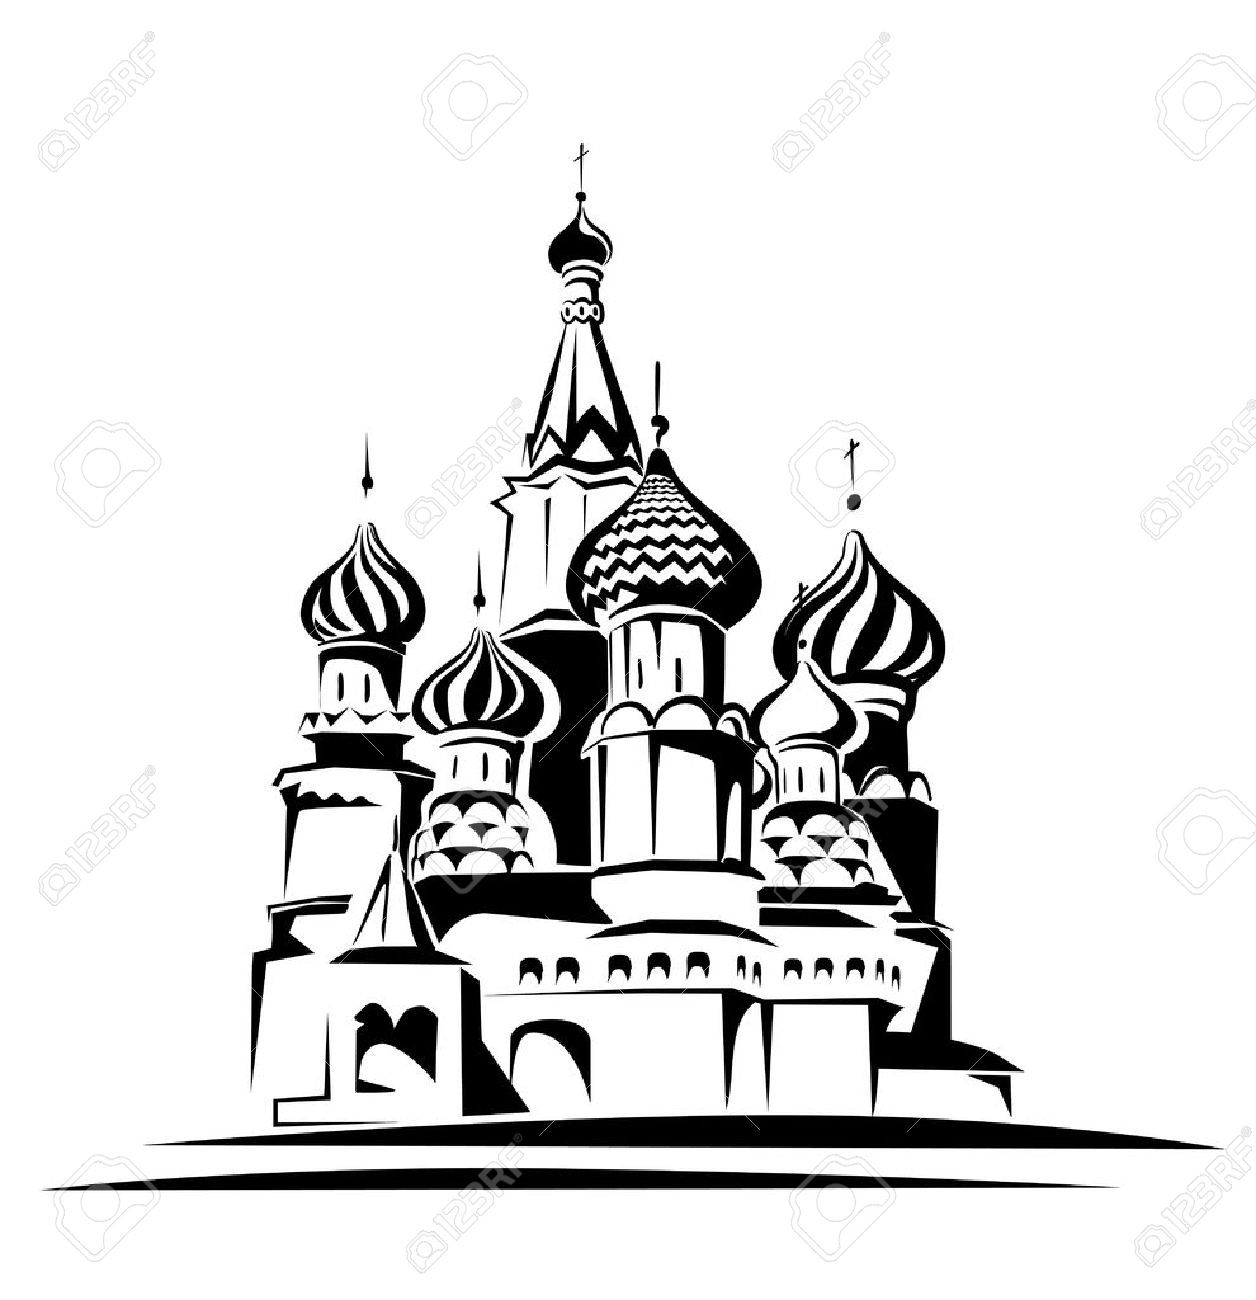 St basil s cathedral clipart clip freeuse stock St basils cathedral clipart 1 » Clipart Portal clip freeuse stock